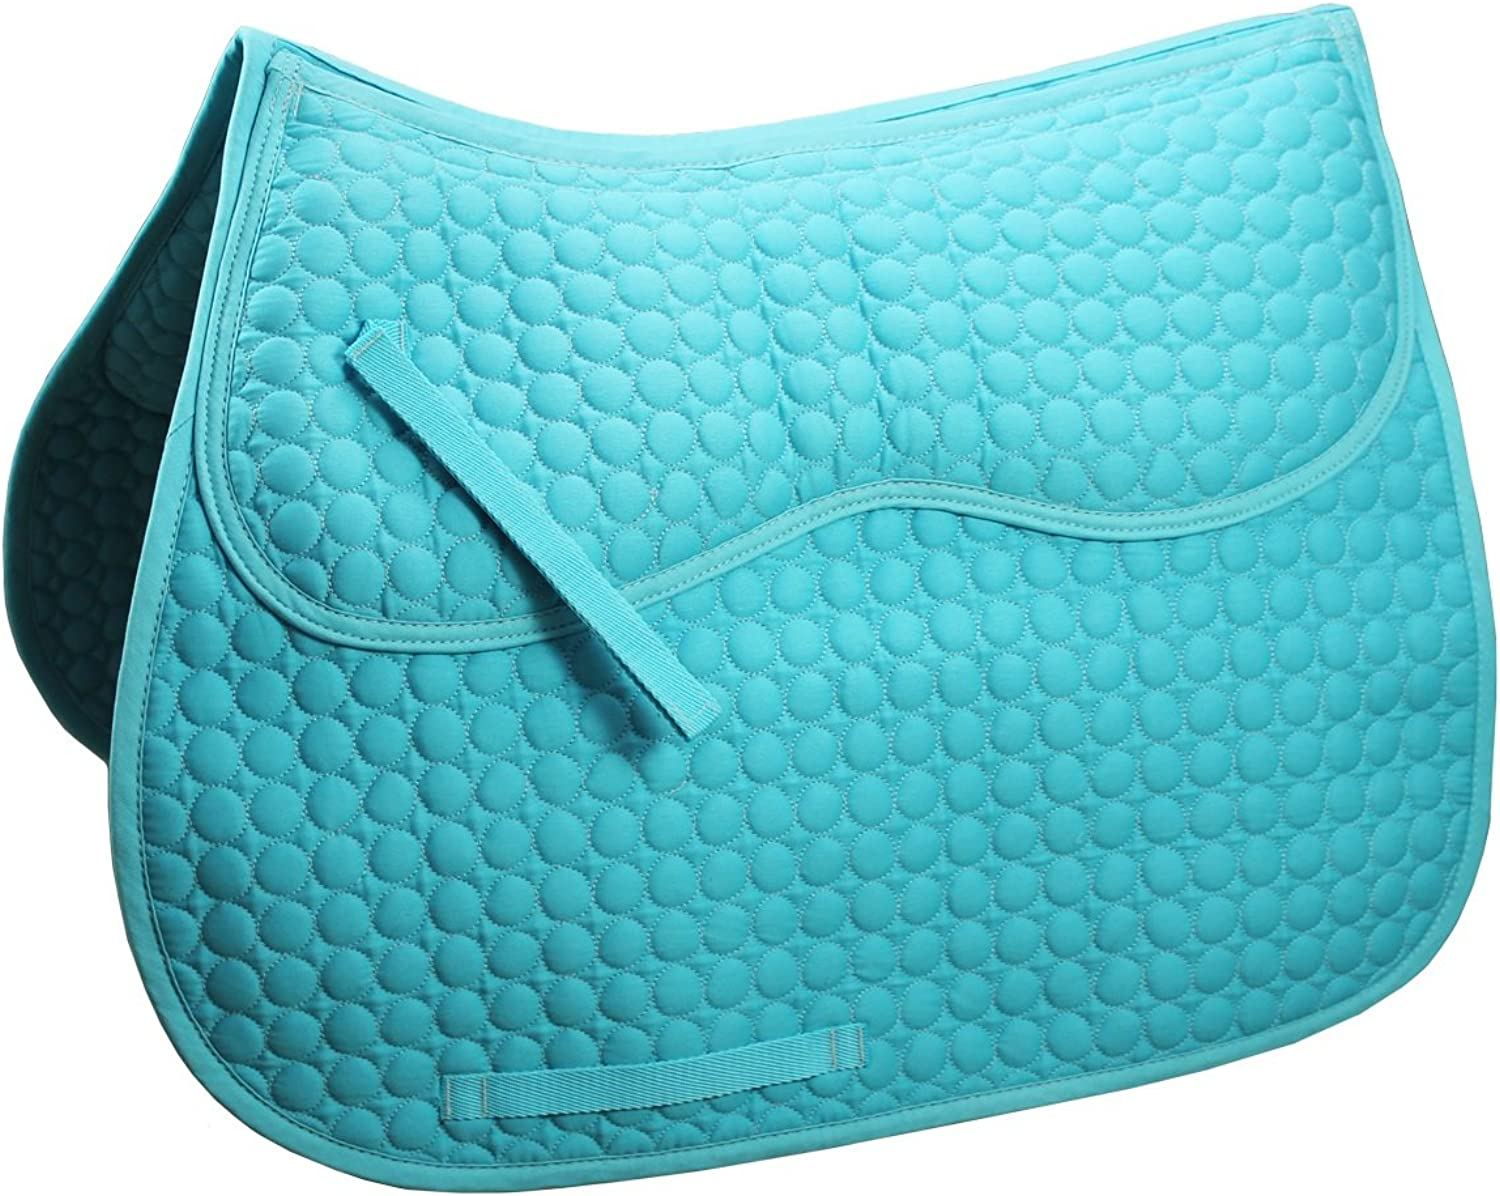 Derby Originals Extra Comfort All Purpose English Saddle Pad with Removable Memory Foam